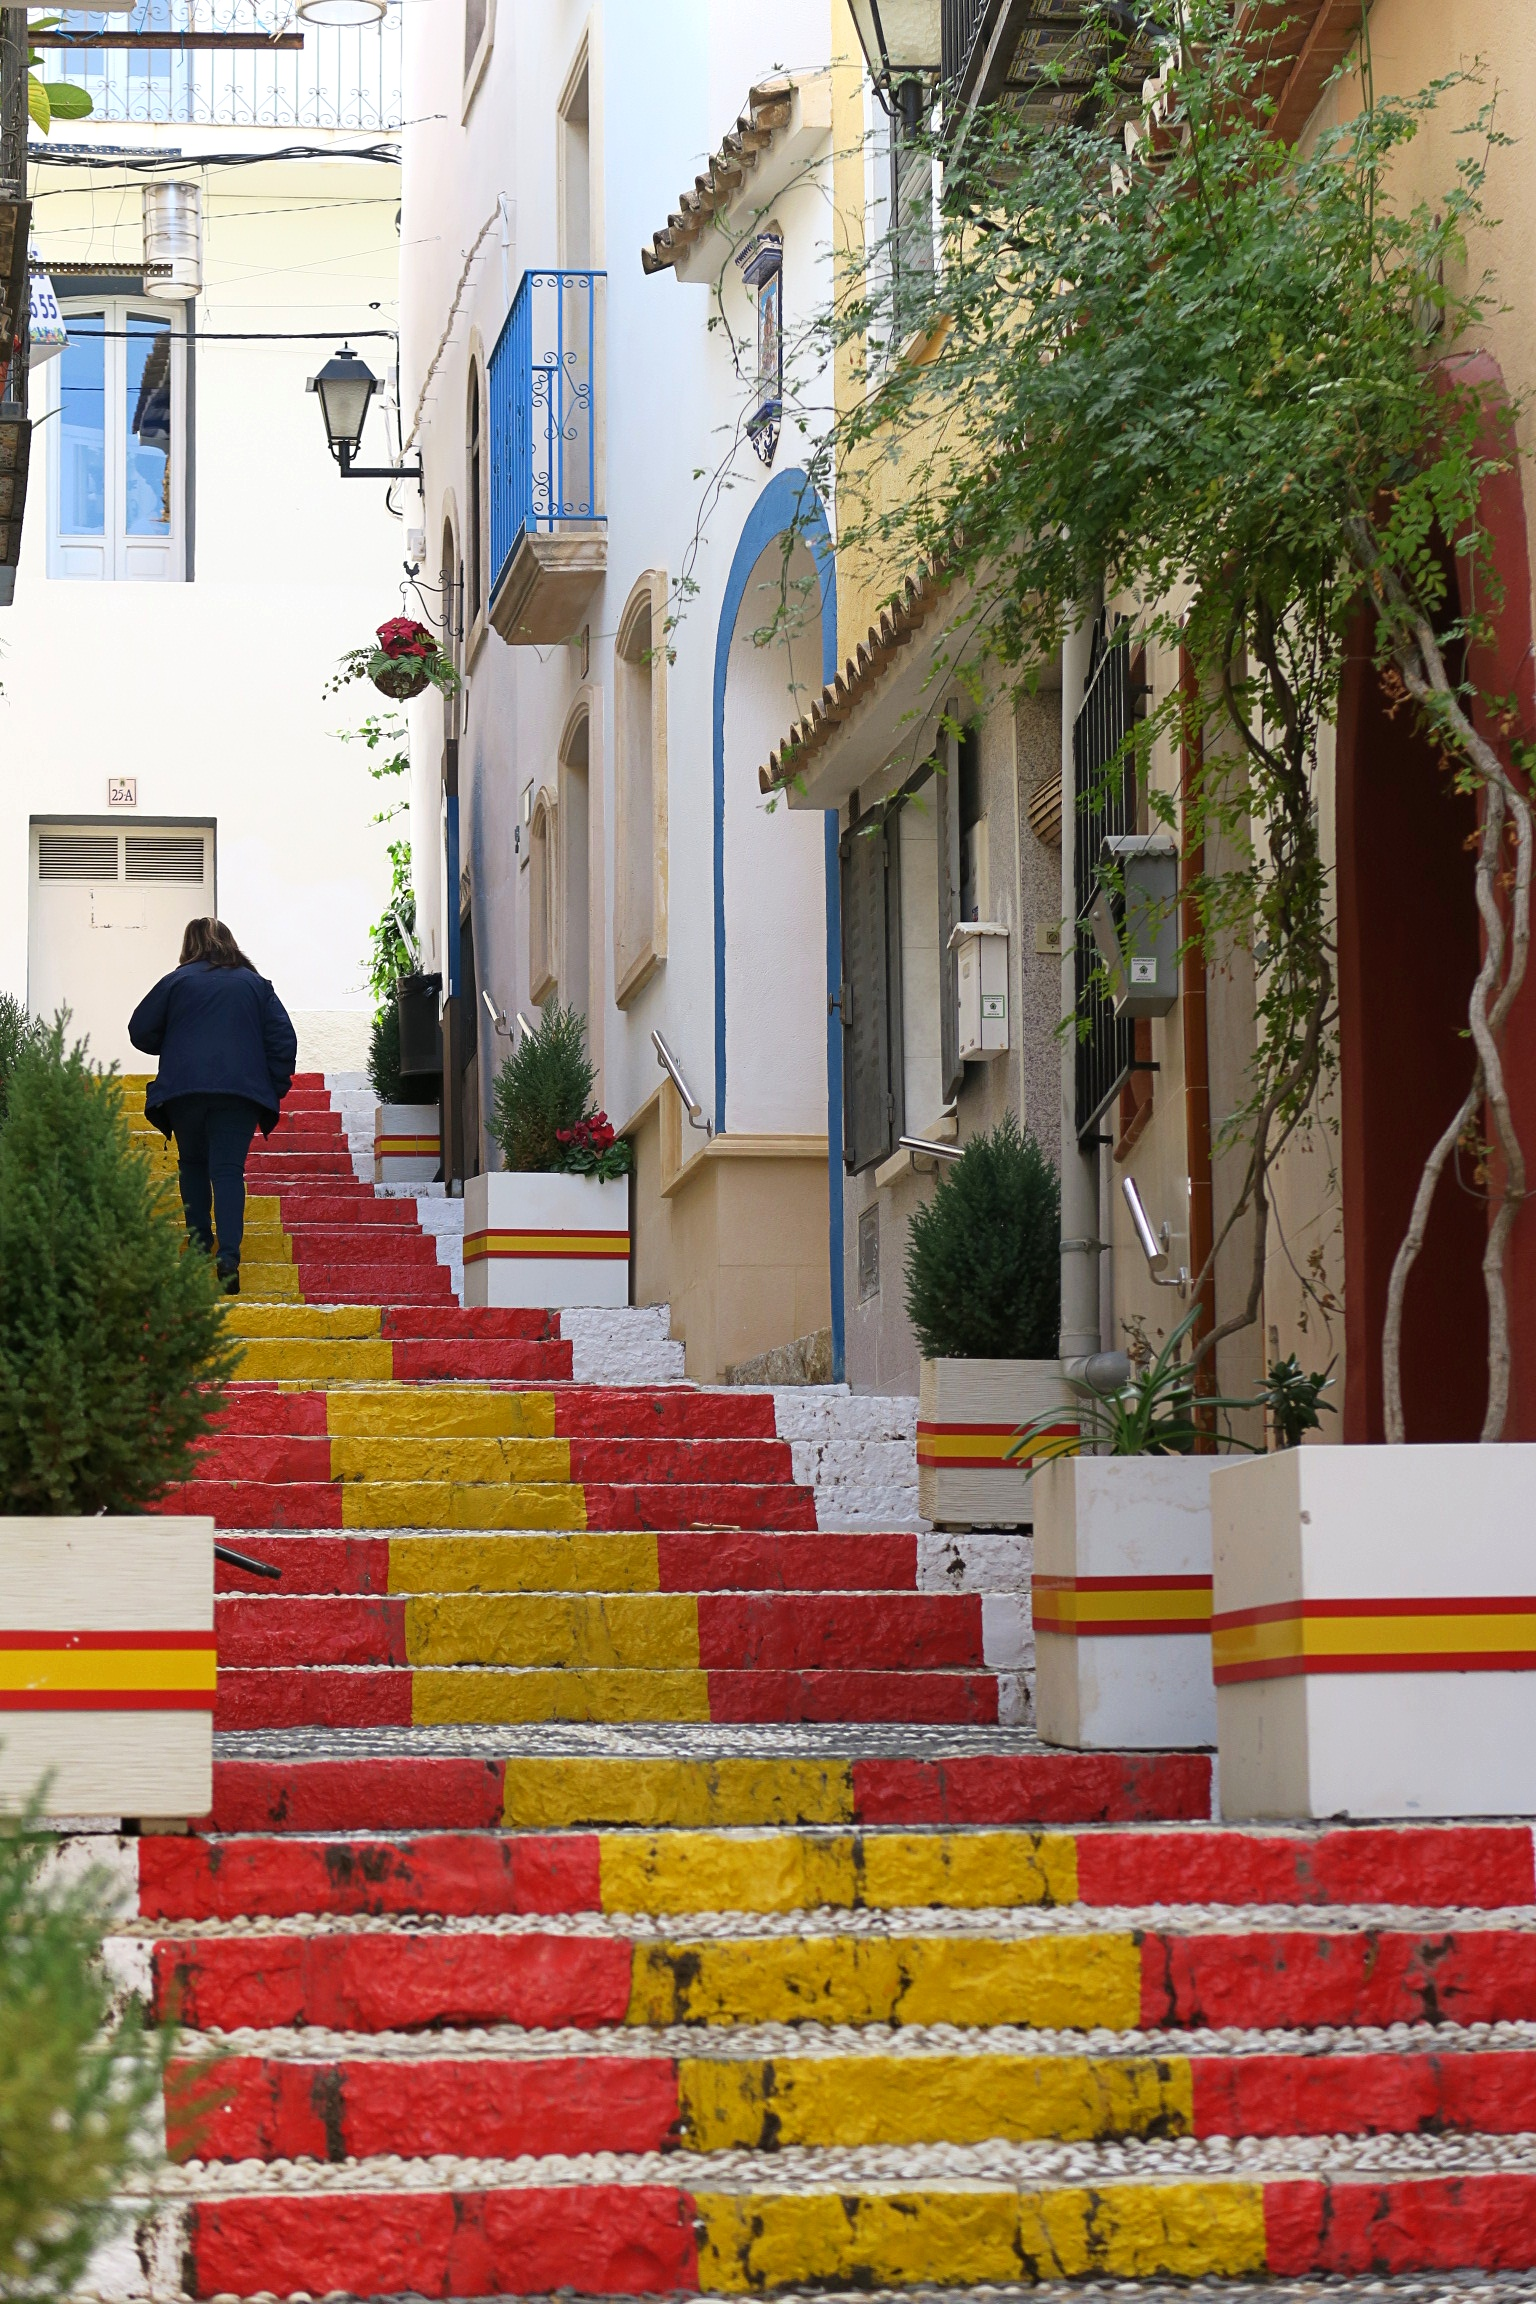 The Calp Town Council wants to promote the town as a tourist destination adapted to people with disabilities